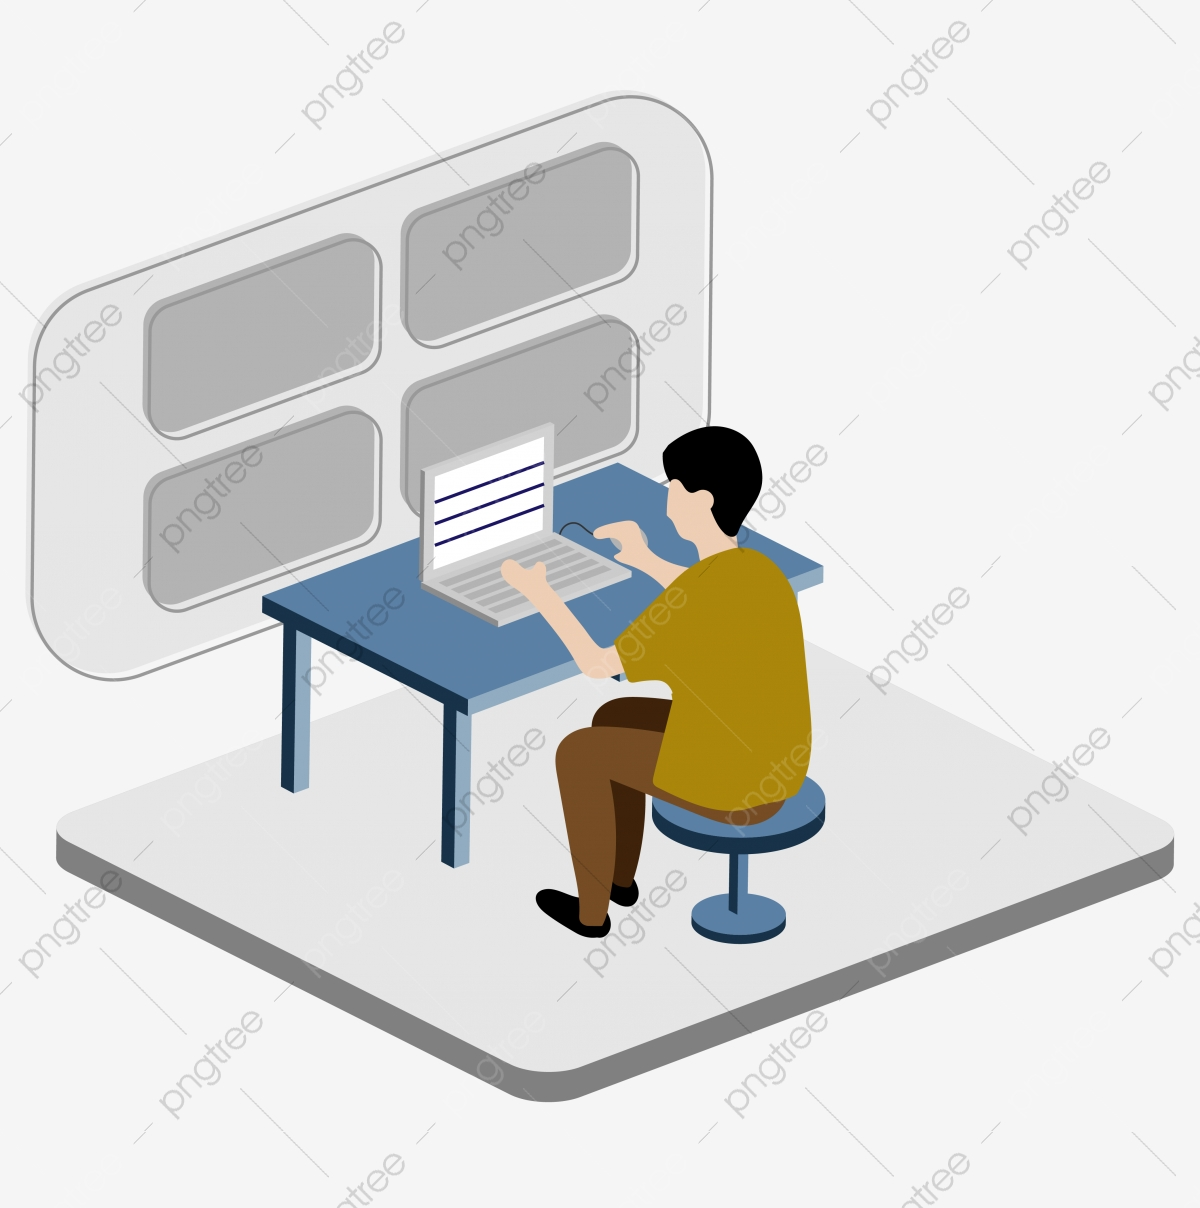 Person Working With A Computer Computer Screen Work Png And Vector With Transparent Background For Free Download